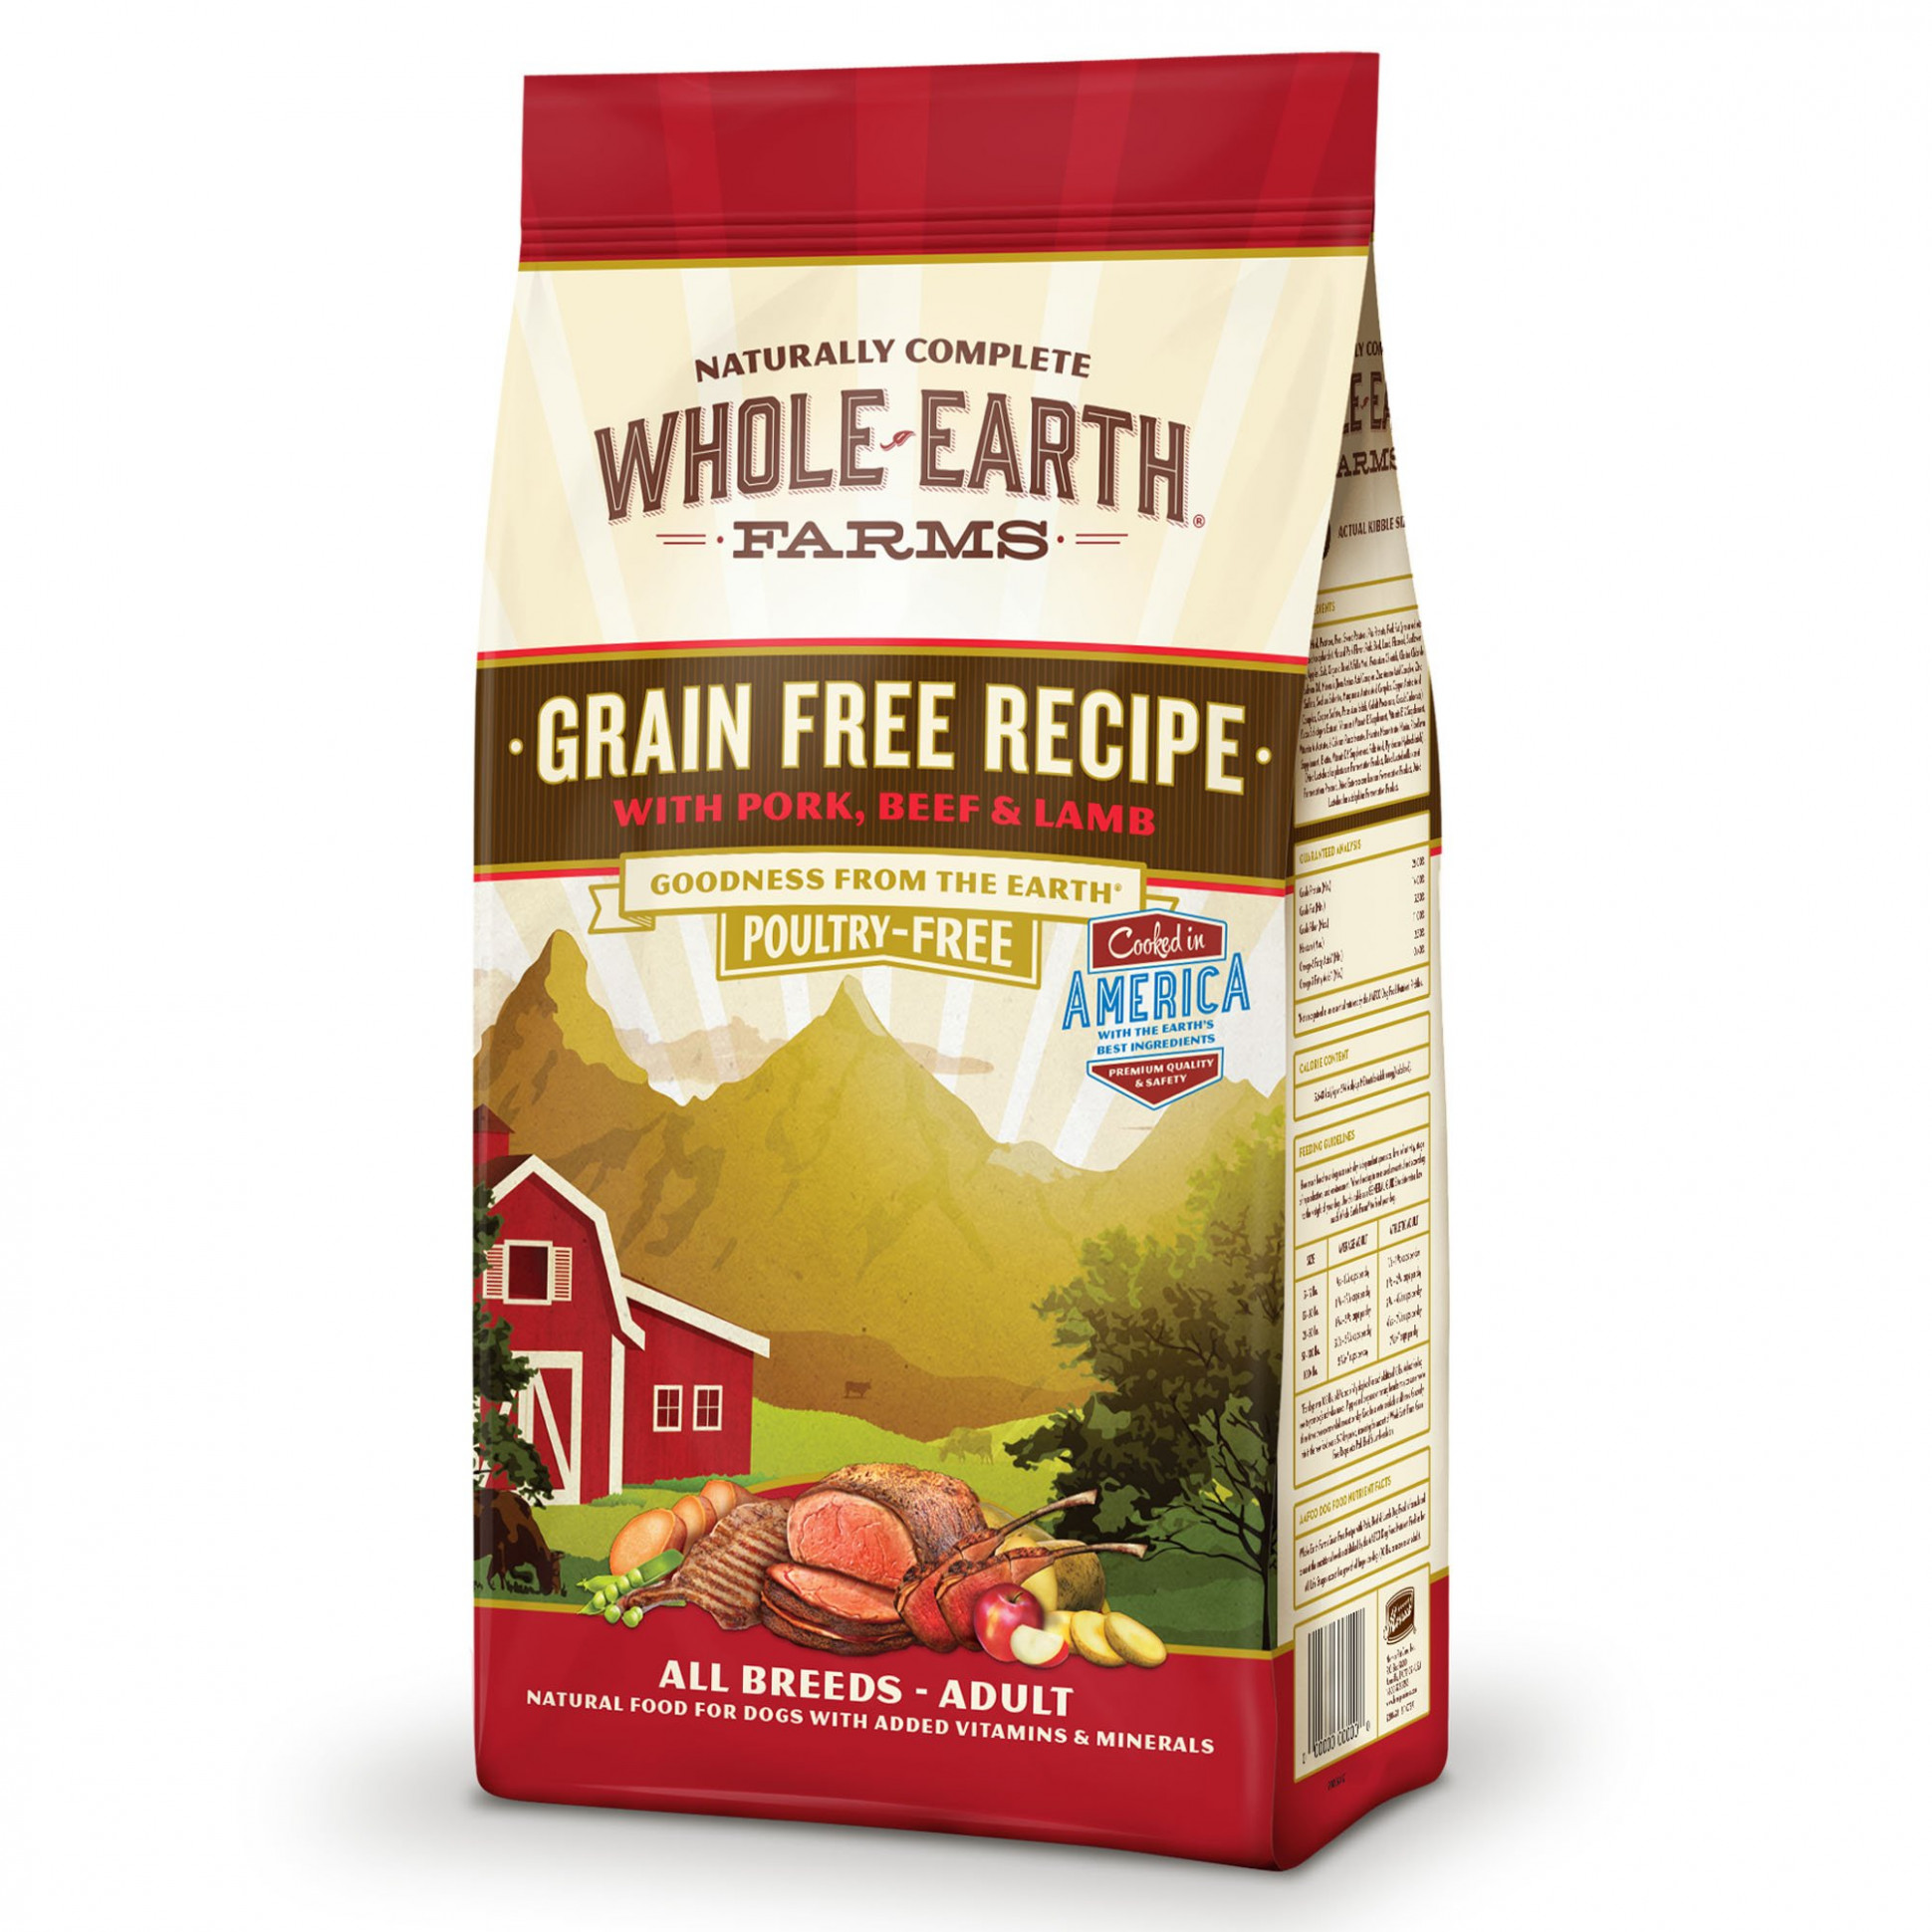 Whole Earth Farms Grain Free Recipe with Pork, Beef & Lamb ..